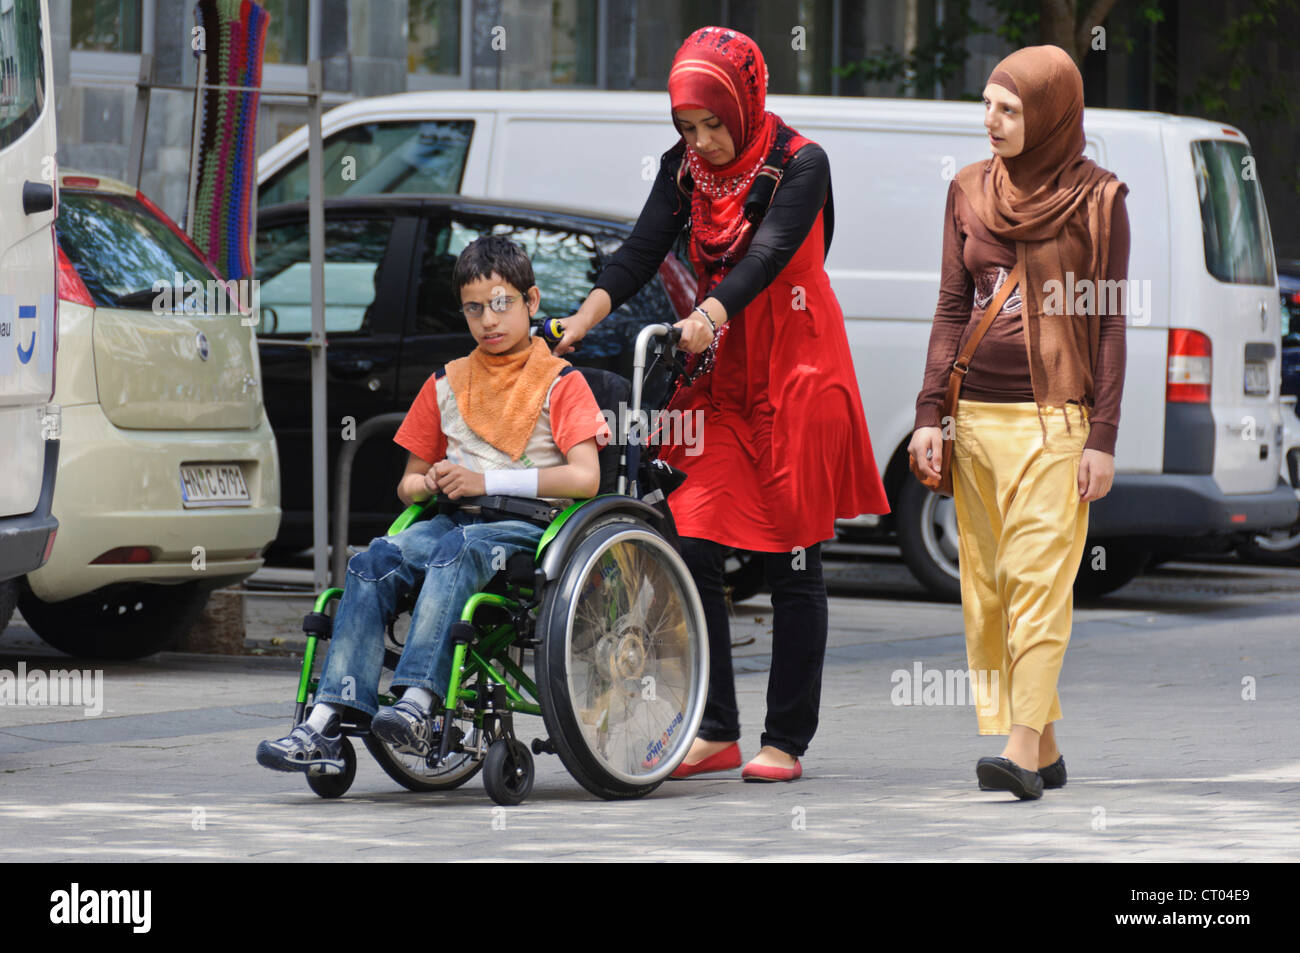 Mentally Physically Disabled Middle Eastern Teenager in Wheel Chair assisted by young women in traditional Islamic - Stock Image